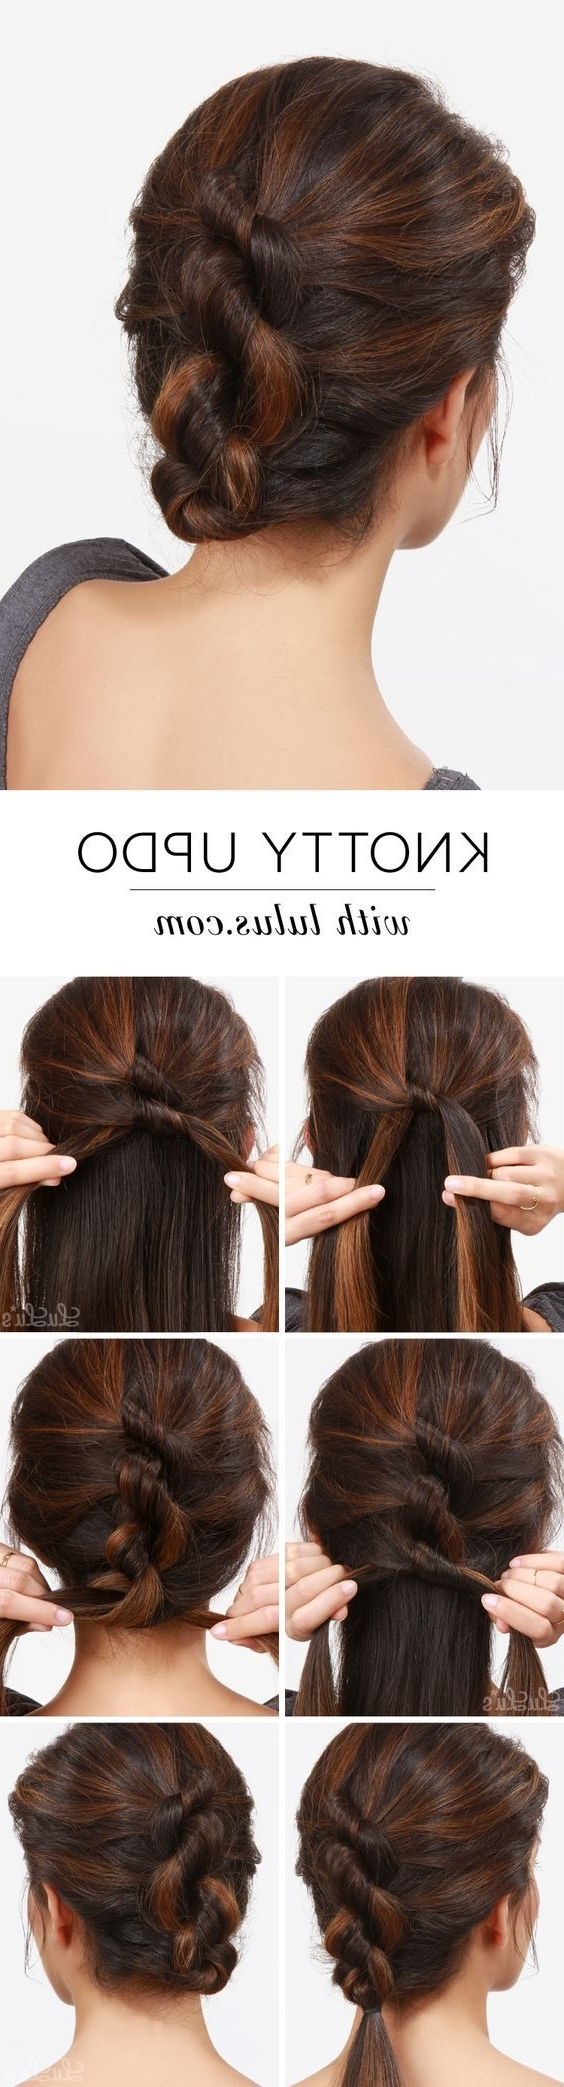 The 12 Easiest Summer Hairstyles On Pinterest | Tie Shoelaces, Updo With Professional Updo Hairstyles For Long Hair (View 15 of 15)